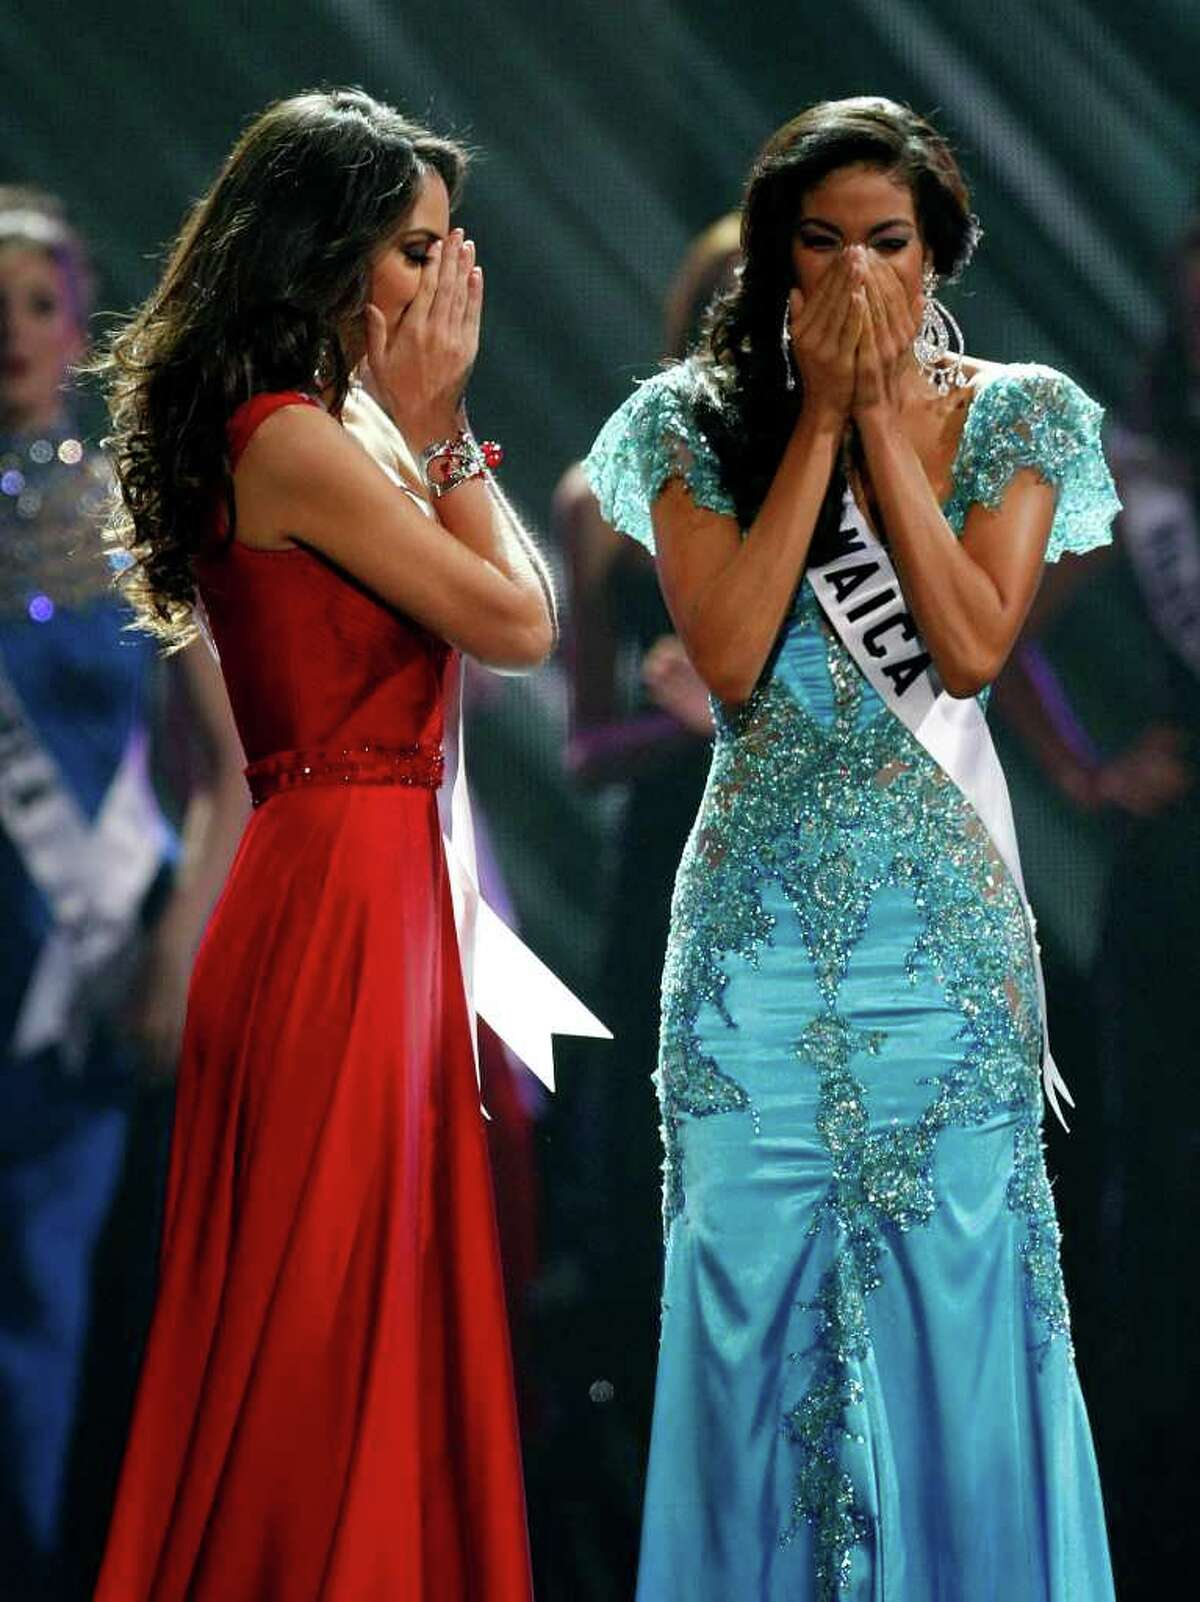 LAS VEGAS - AUGUST 23: Miss Mexico 2010, Jimena Navarrete (L), and Miss Jamaica 2010, Yendi Phillipps, react as Navarette is named the 2010 Miss Universe and Phillipps the first runner-up during the 2010 Miss Universe Pageant at the Mandalay Bay Events Center August 23, 2010 in Las Vegas, Nevada. (Photo by Ethan Miller/Getty Images)